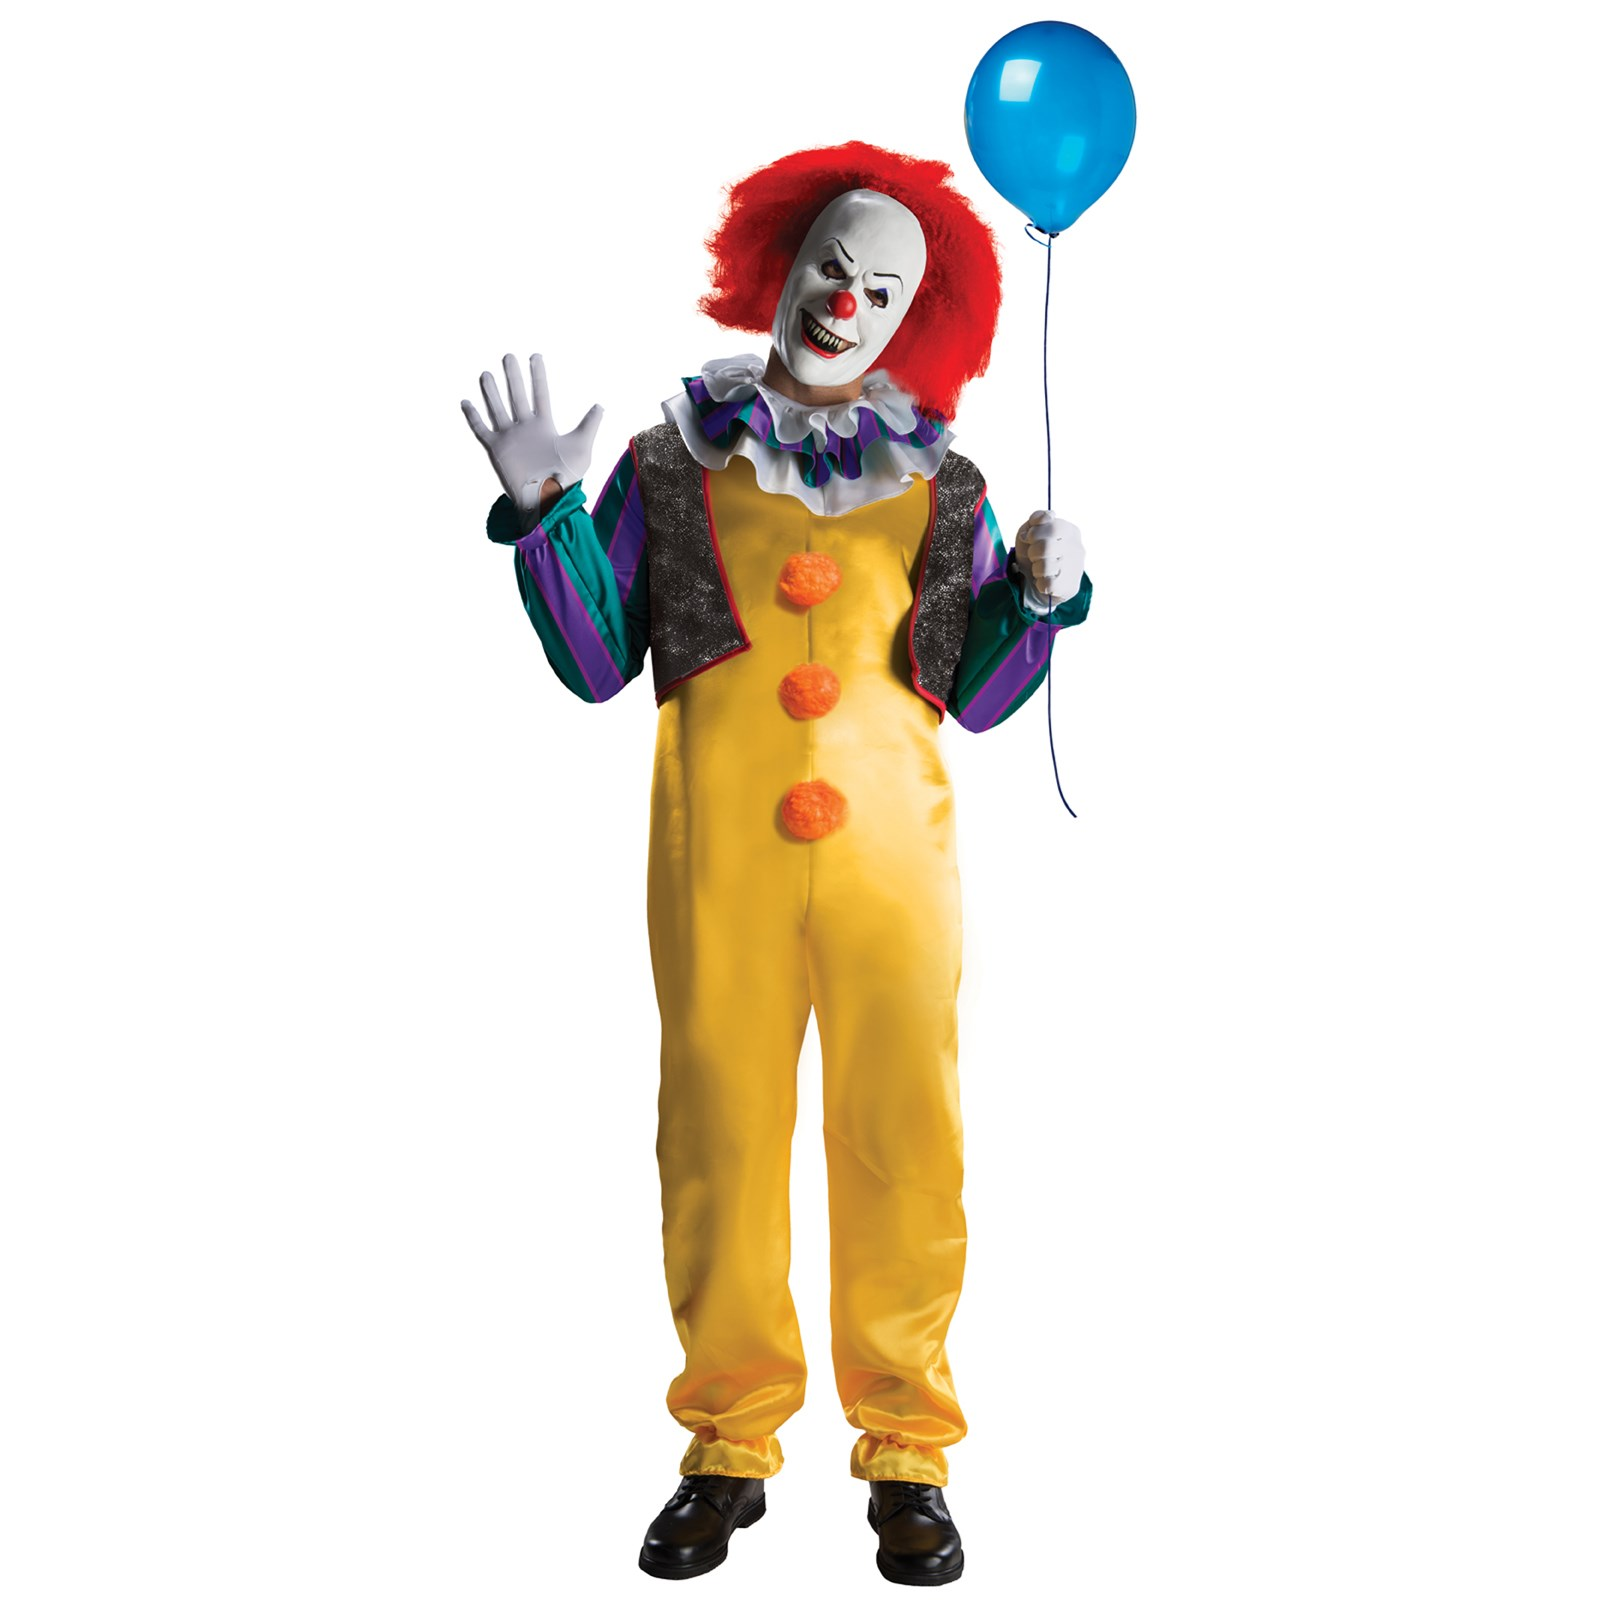 Stephen King's IT - Deluxe Pennywise Clown Costume